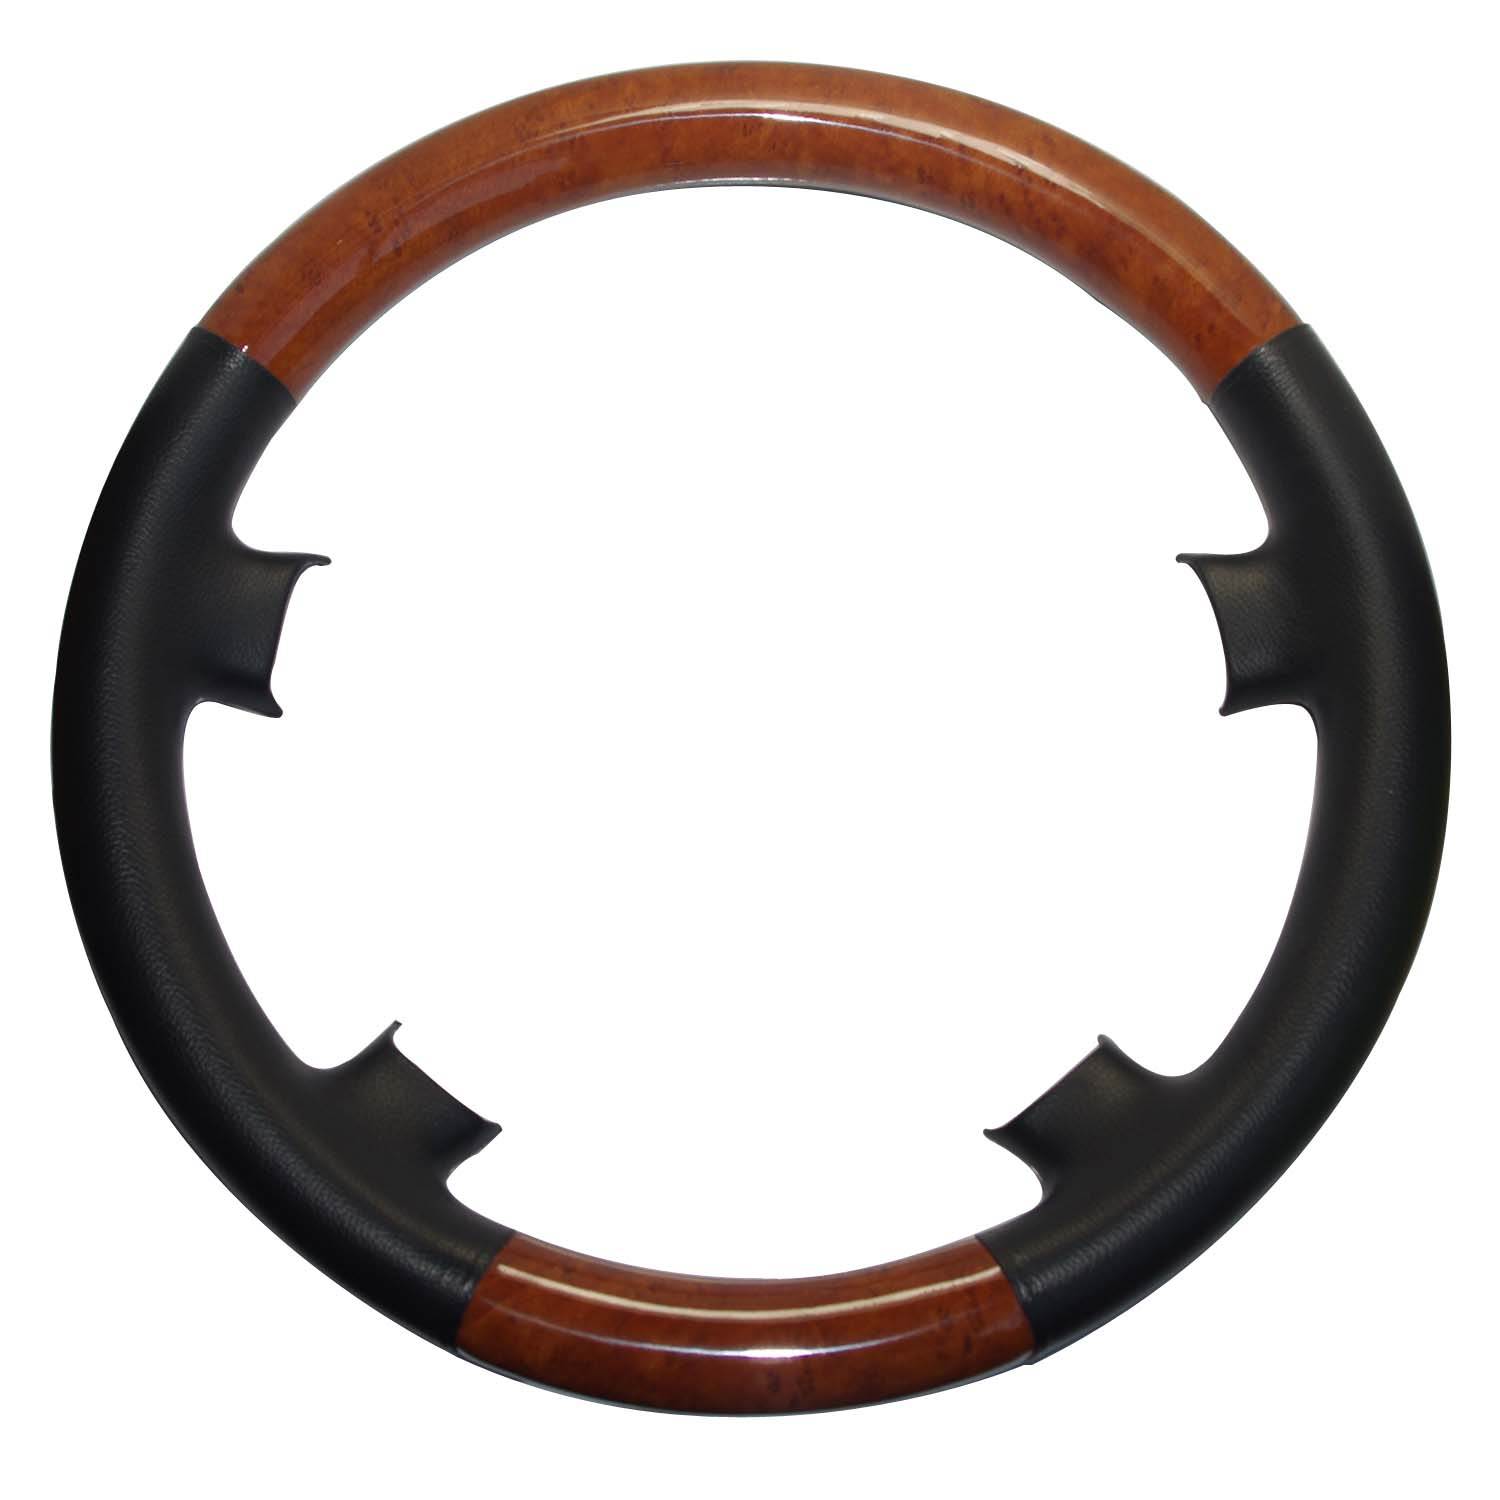 Steering-Wheel-Cover Light W124 Wood W140 Mercedes S320 Black for 91-98 W140/S/S300/.. title=